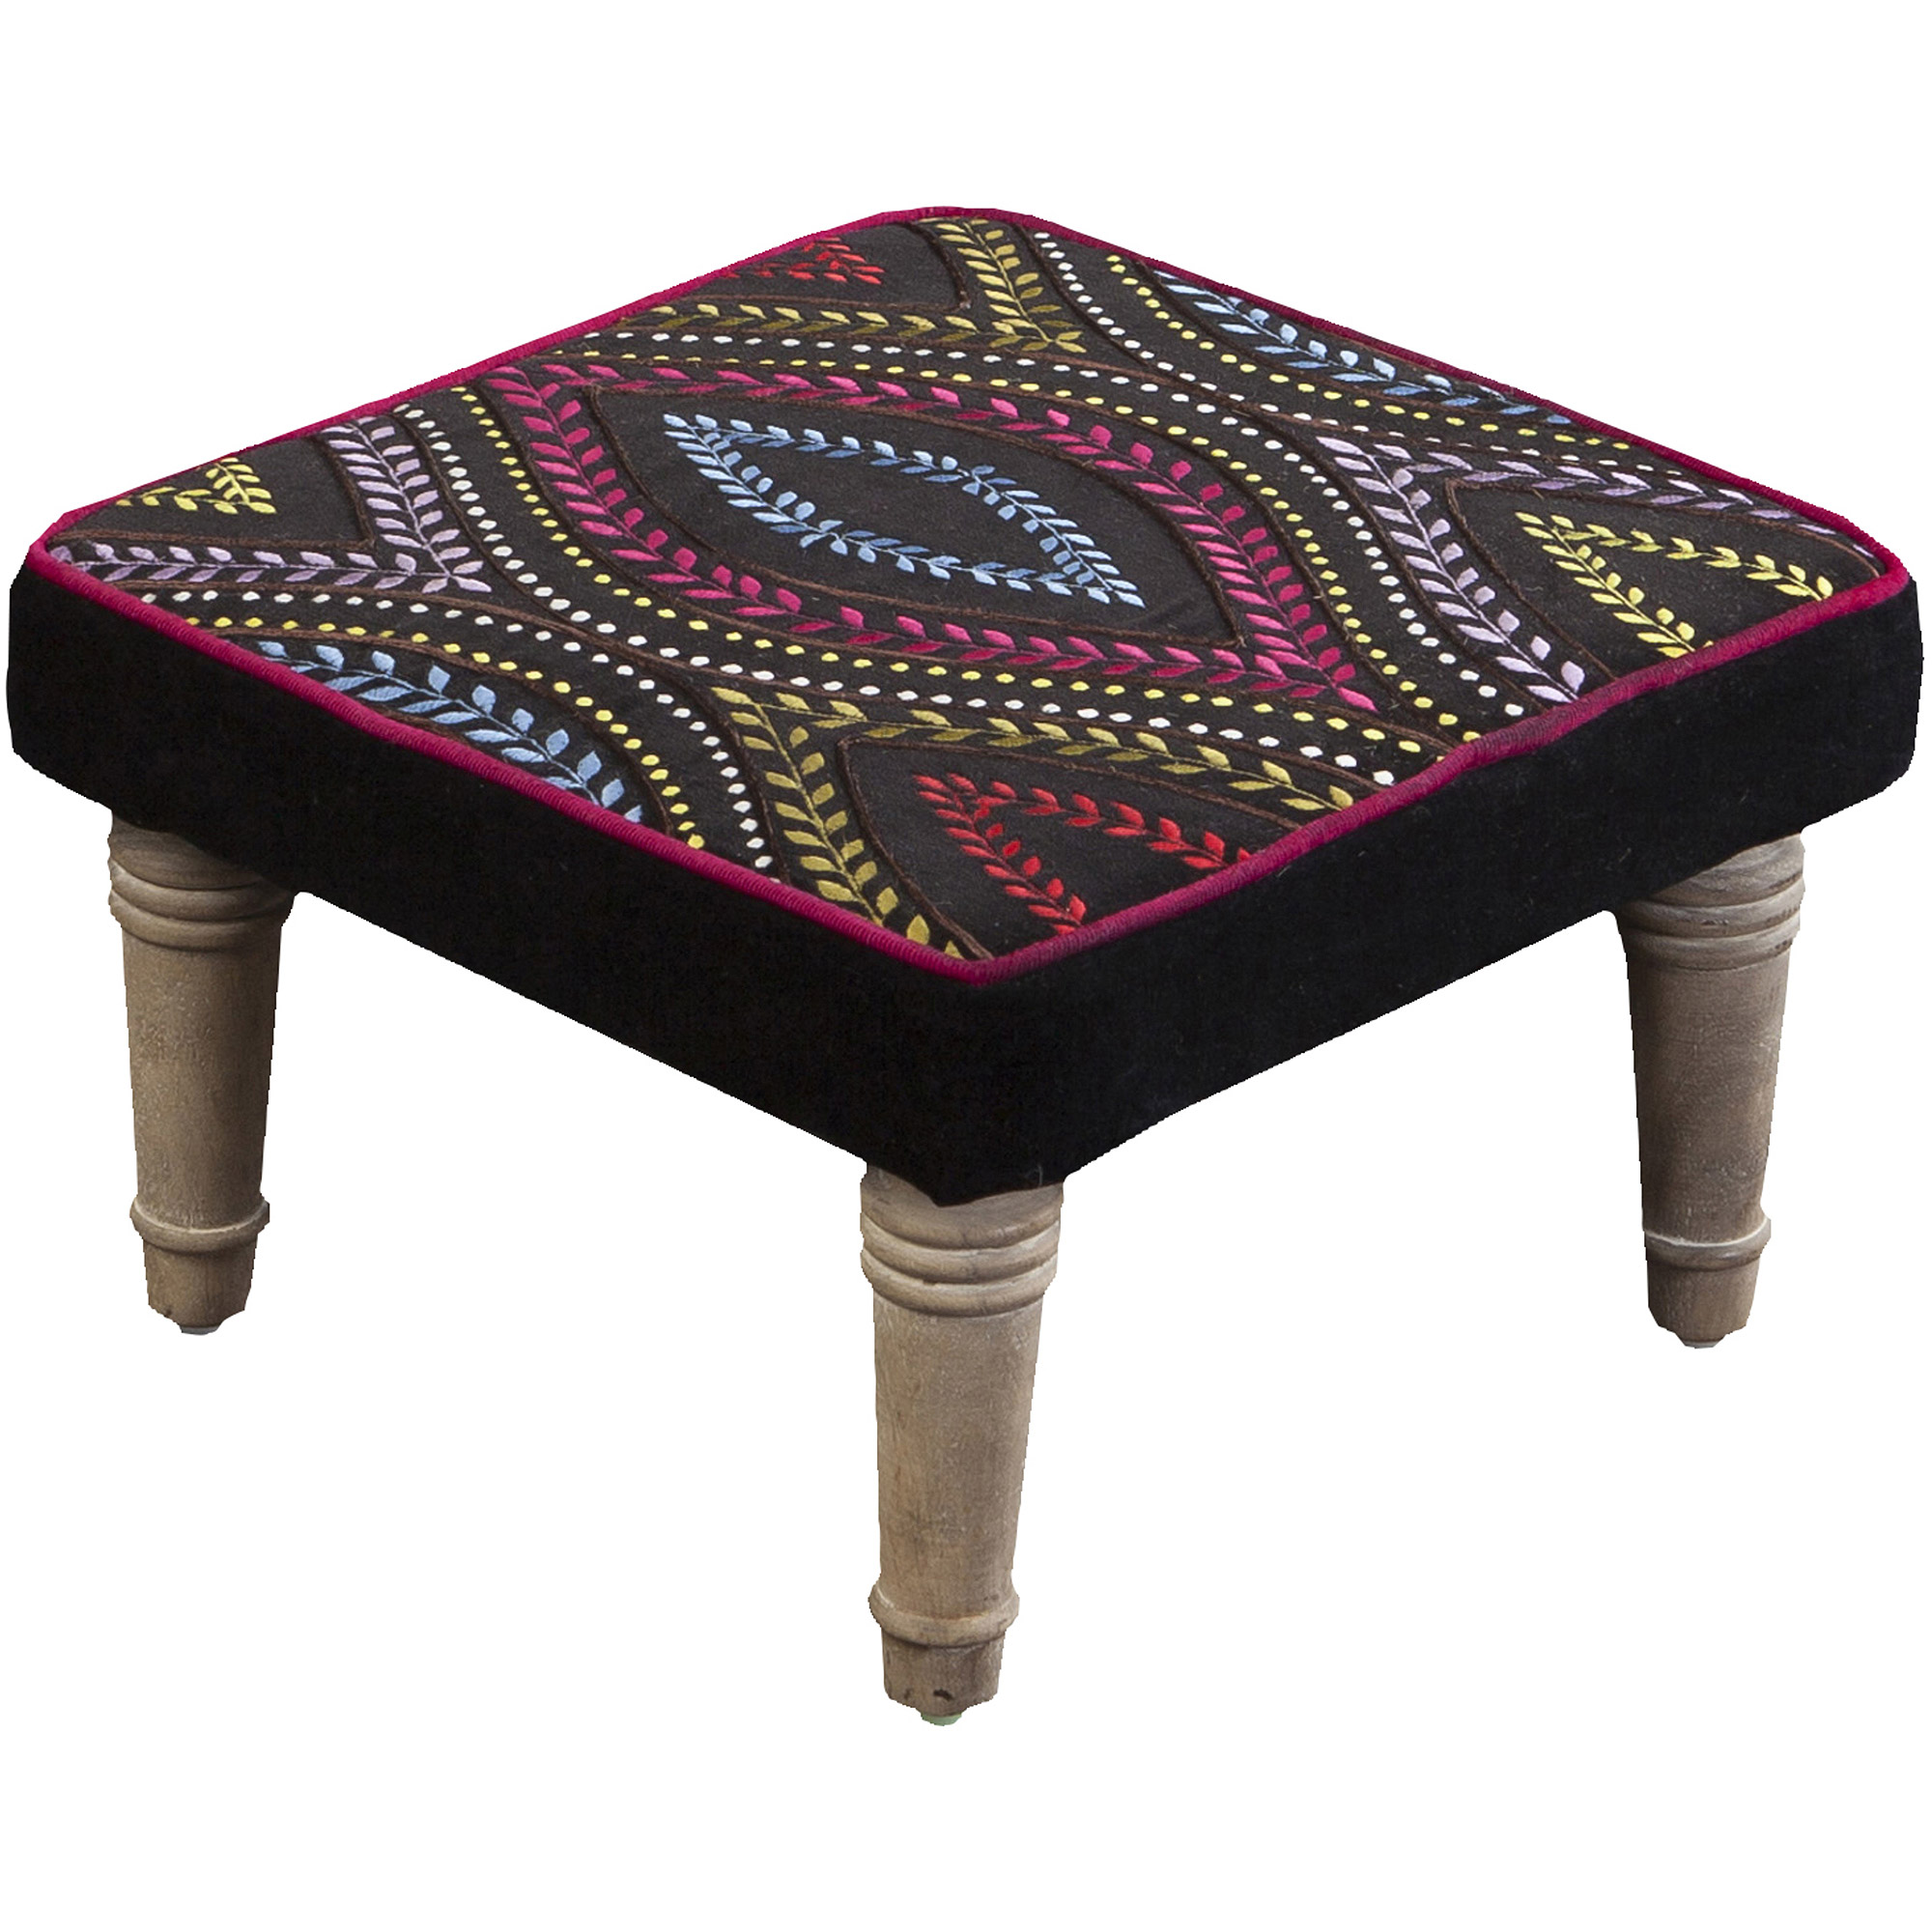 Art of Knot Meaux Velvet Black Ottoman